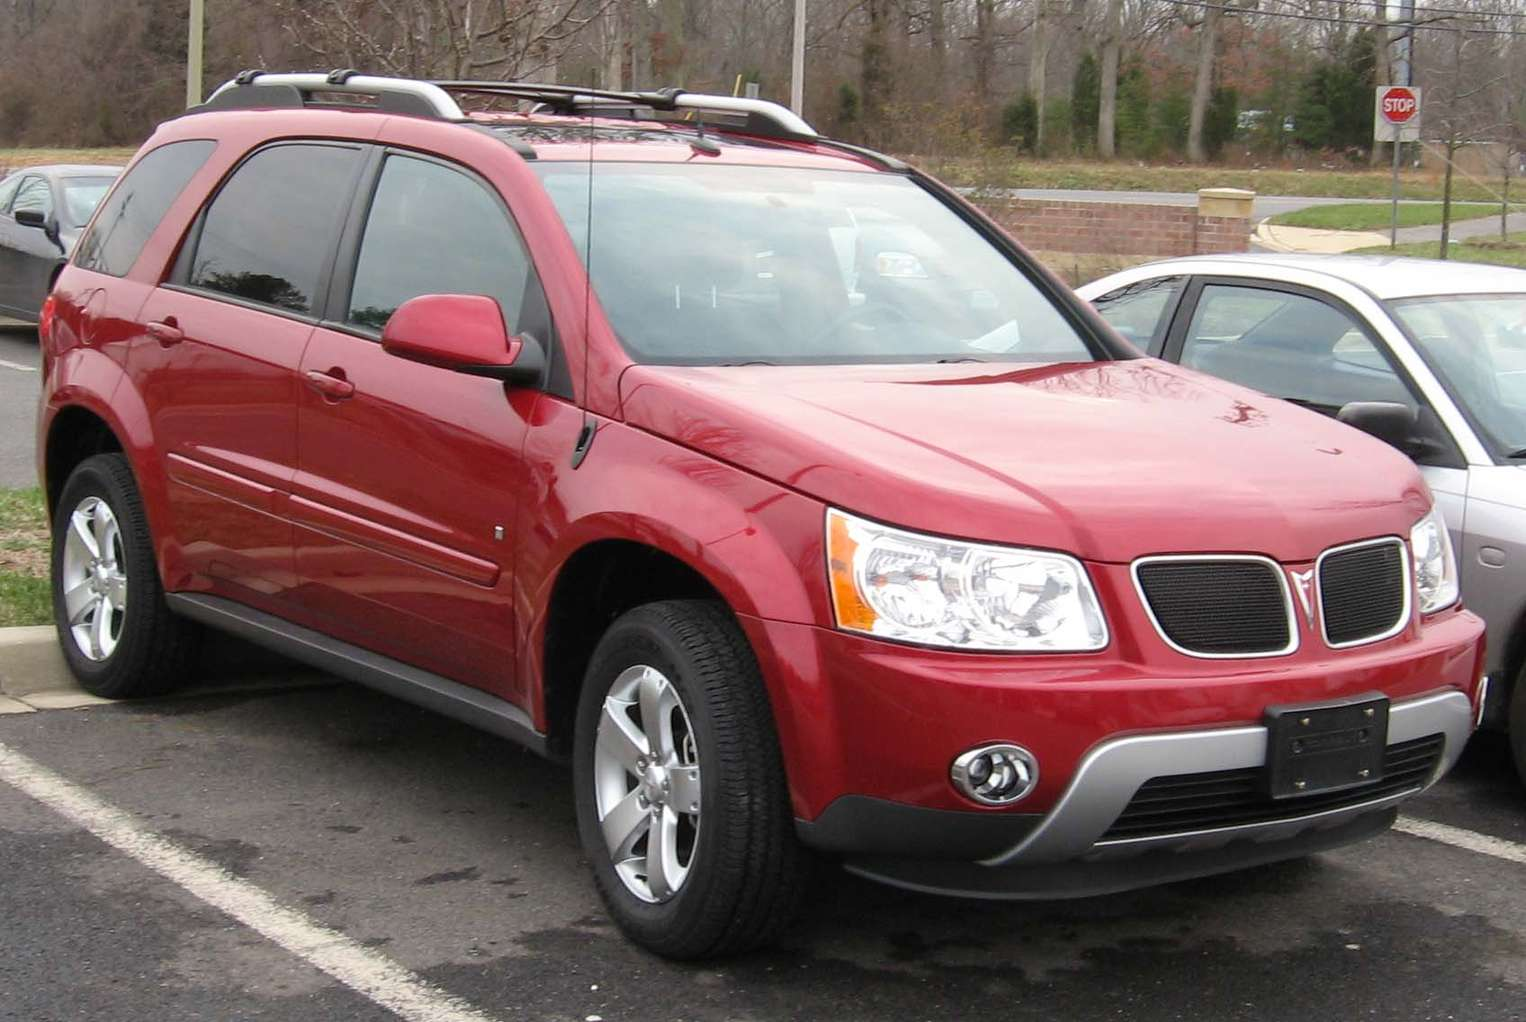 Pontiac Torrent #7332319